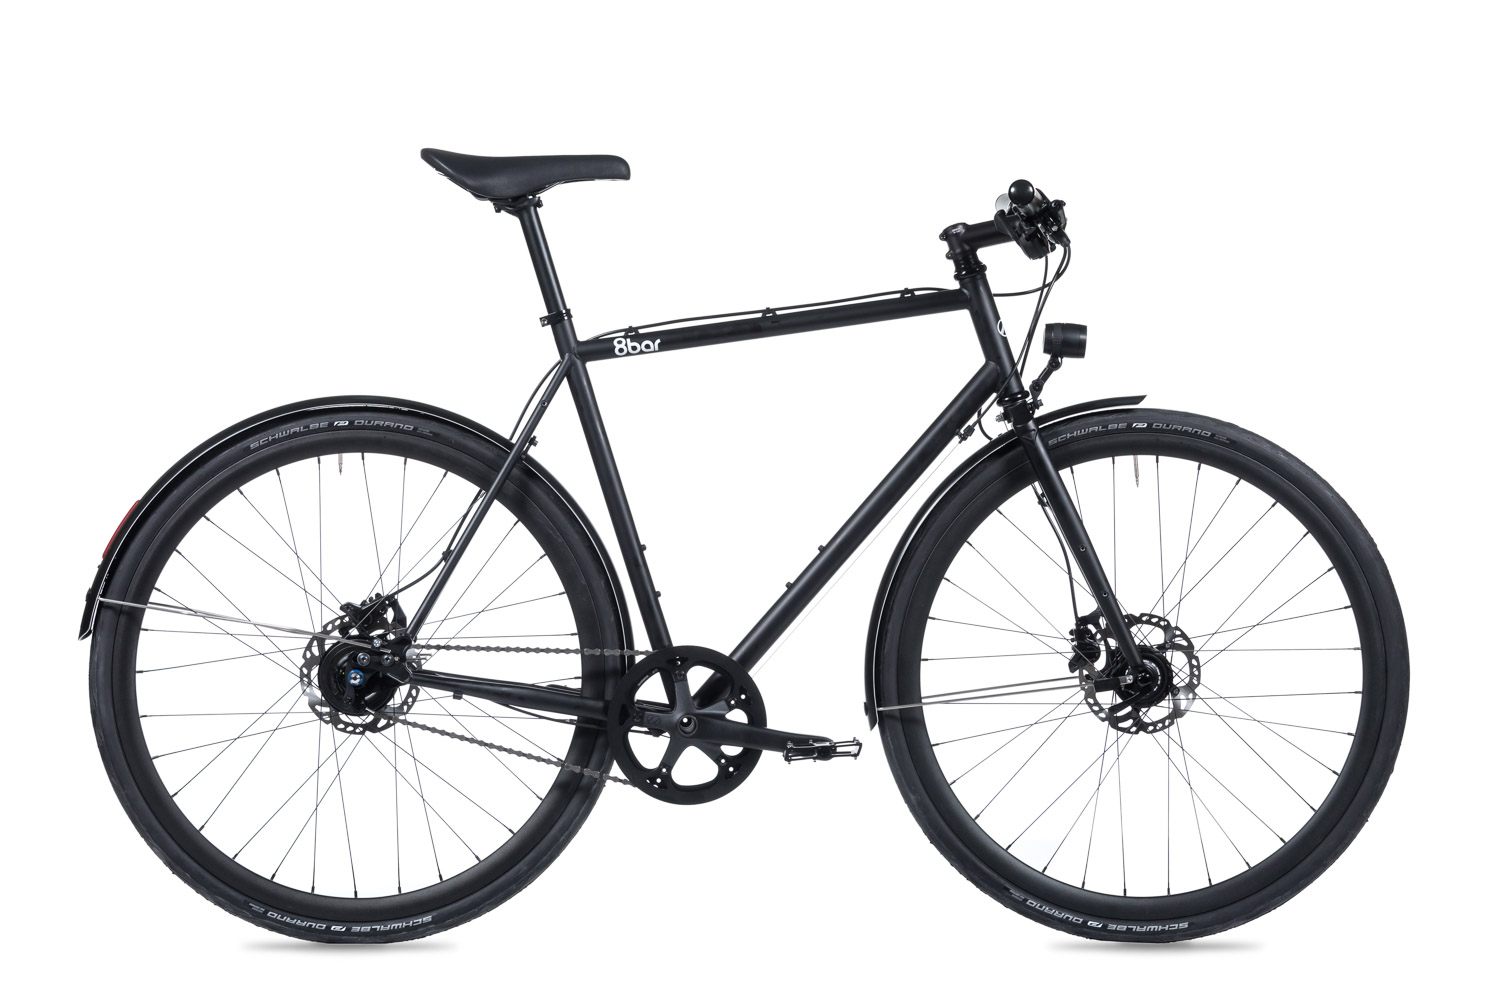 8bar complete bike mitte steel black urban pro studio-1